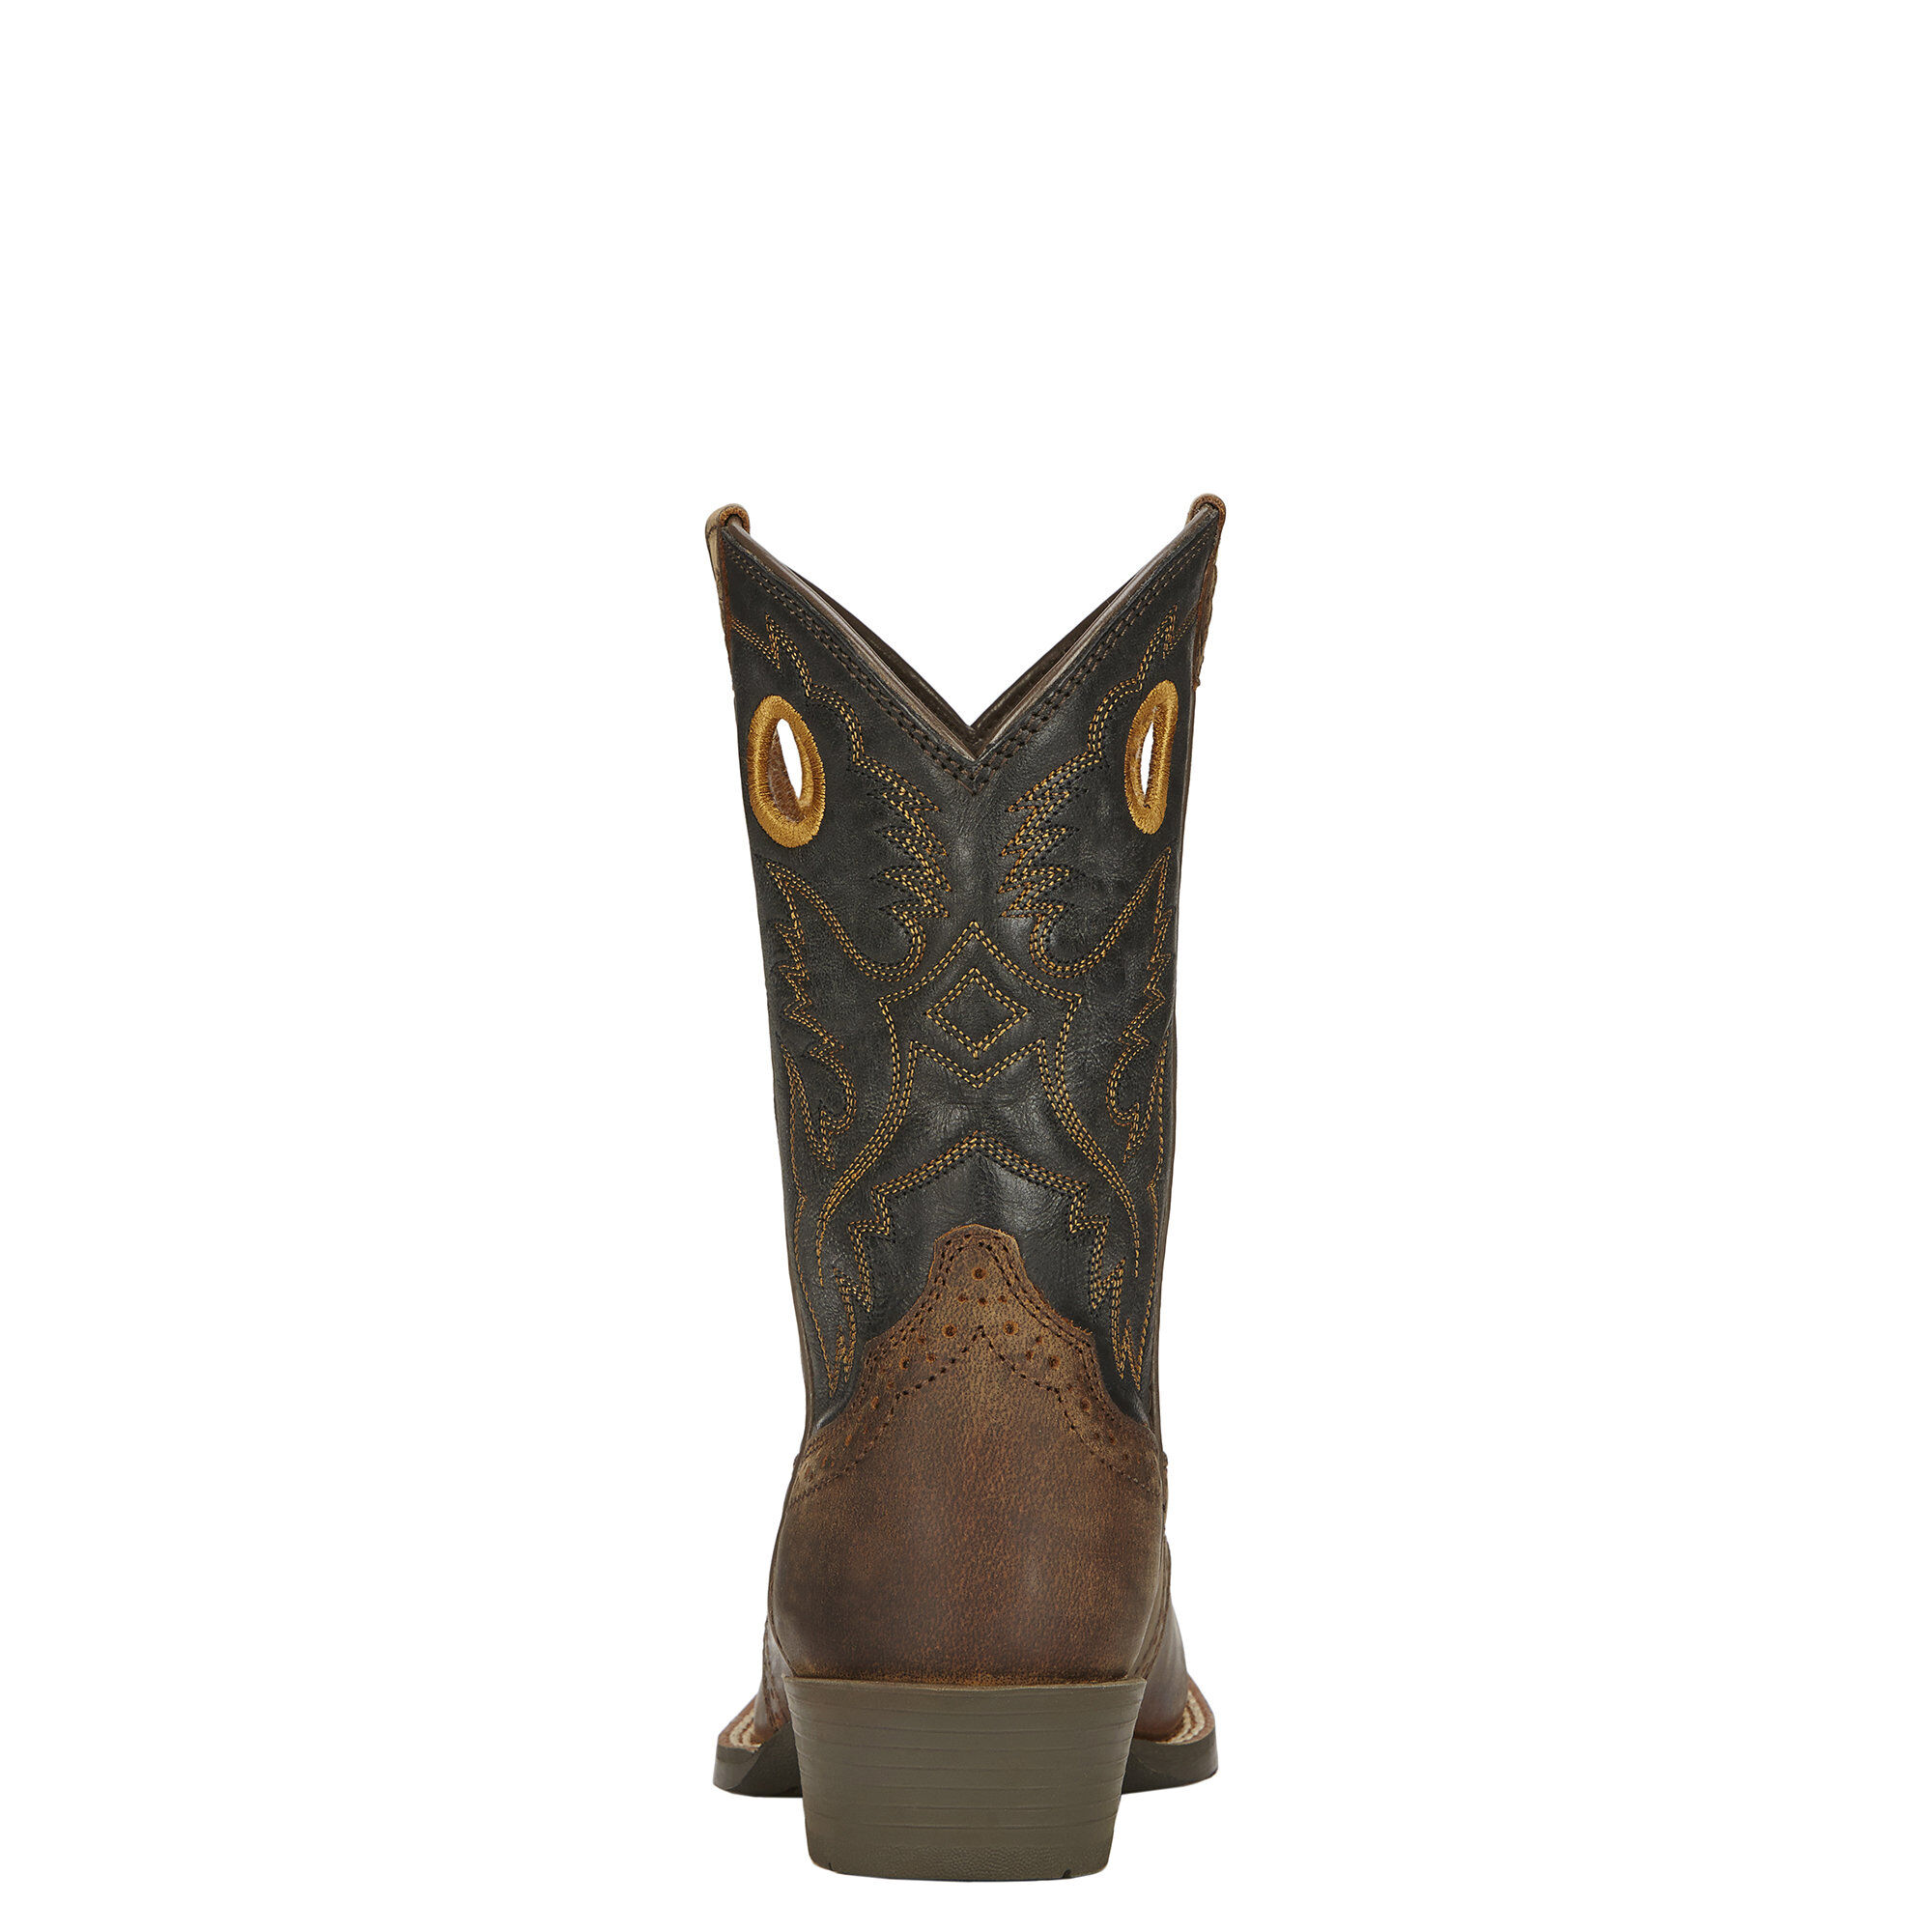 Ariat Childrens Heritage Roughstock Distressed Brown Cowboy Boots 10016239